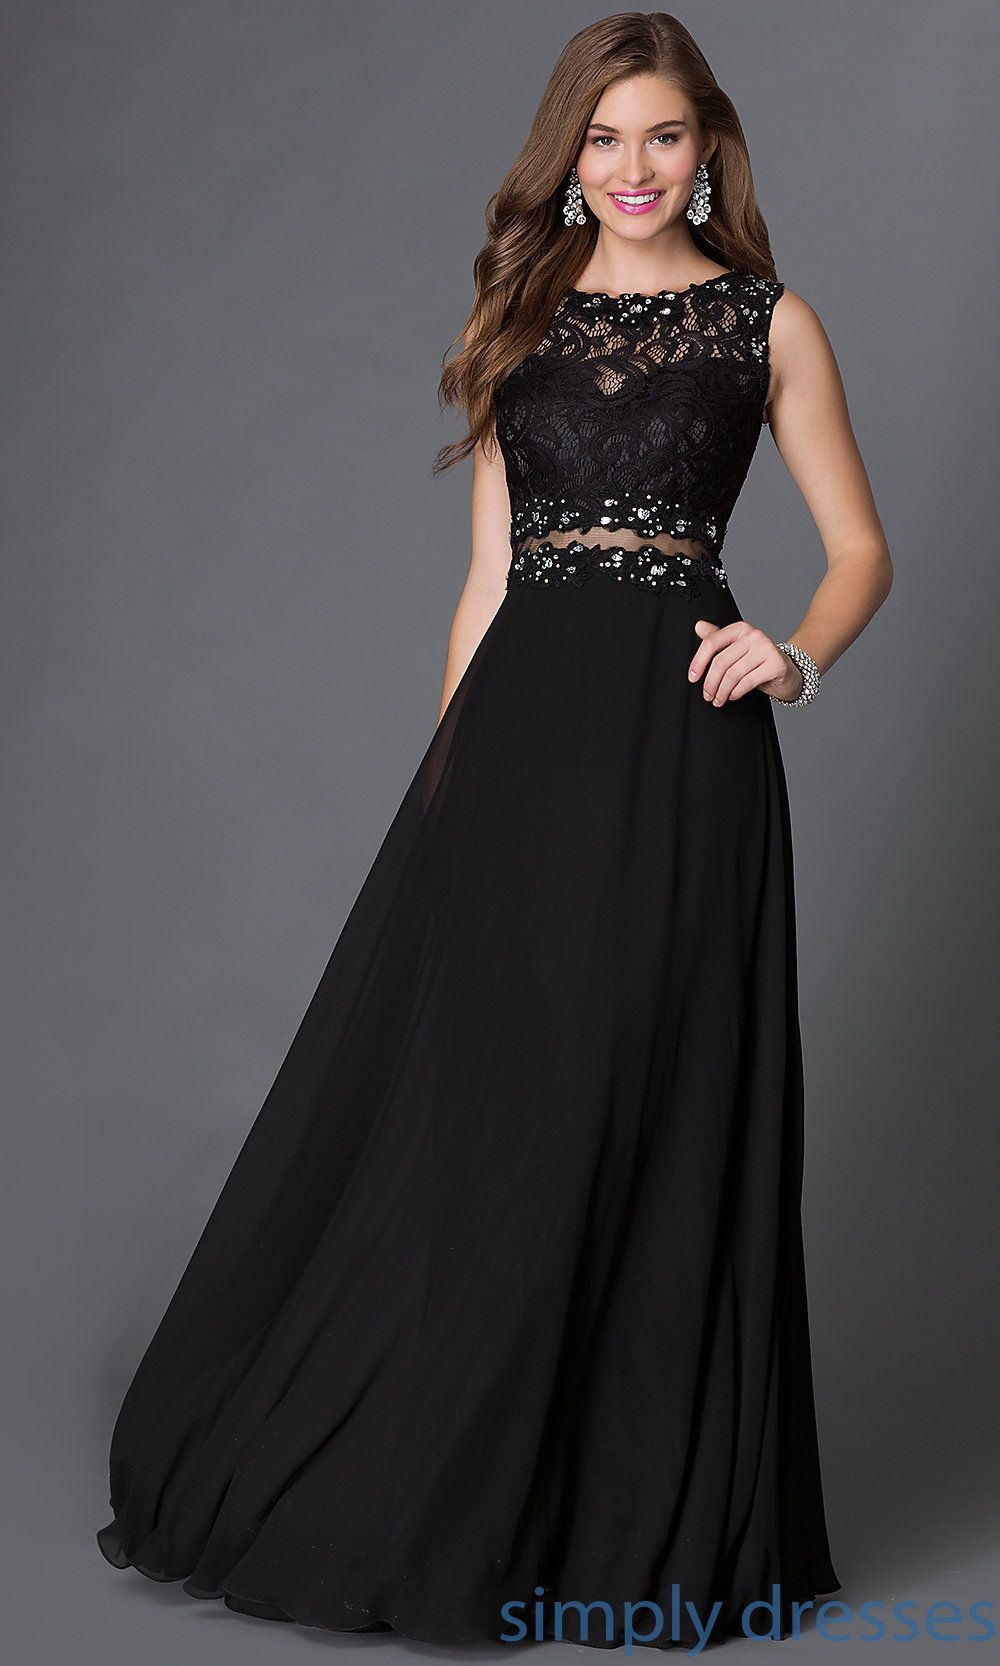 Floor-Length Mock Two-Piece Black Lace Gown in 2018   Dresses ...